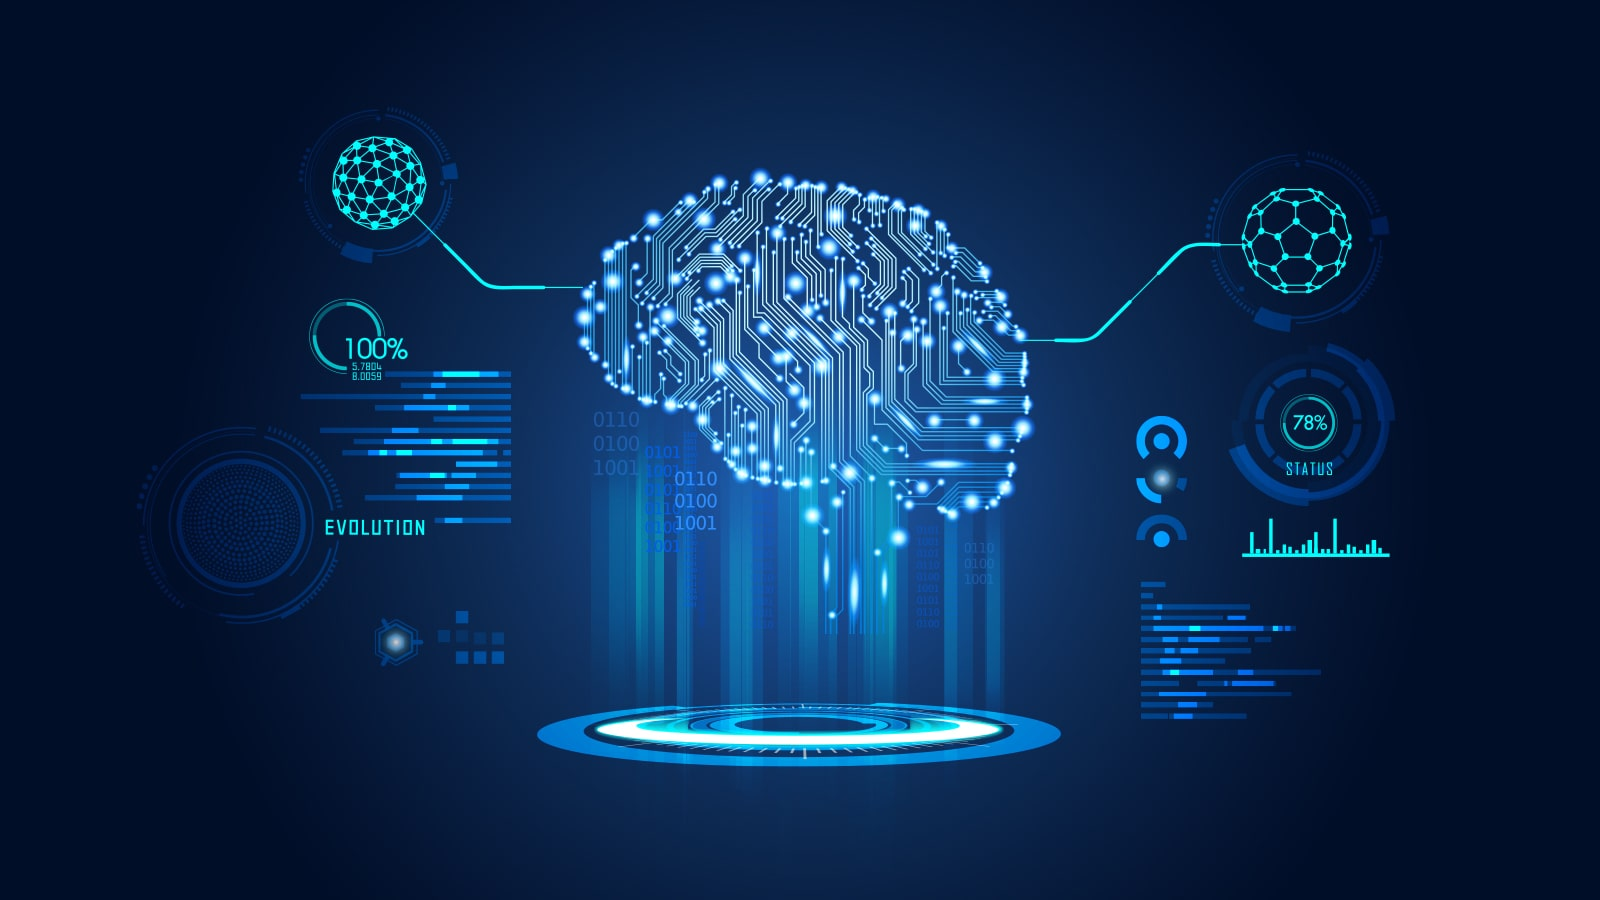 Artificial Intelligence and Machine Learning - Trending 2020 Technologies